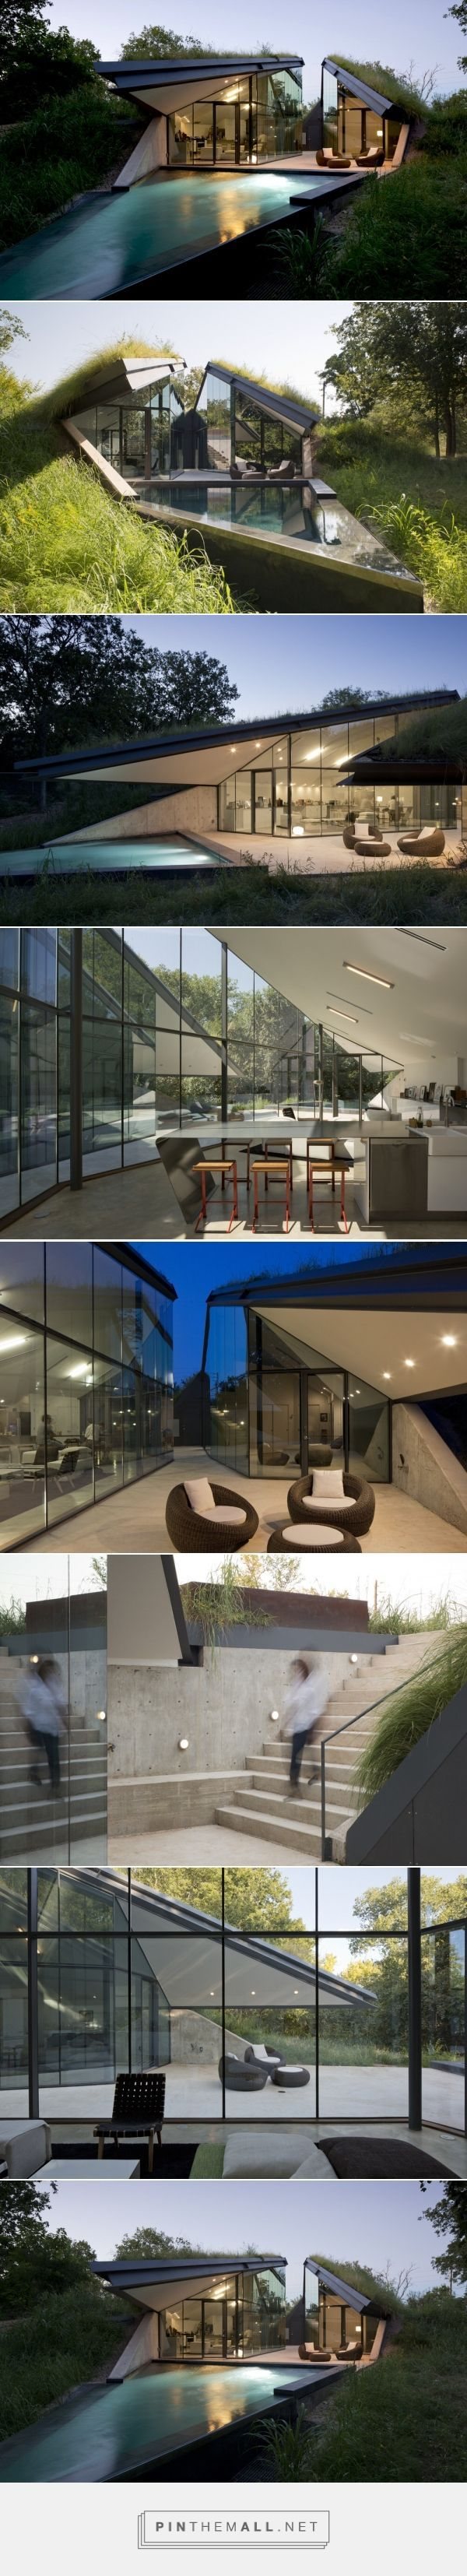 Edgeland House Built into a Hill by Bercy Chen Studio - Homeli ArchitectureNow10